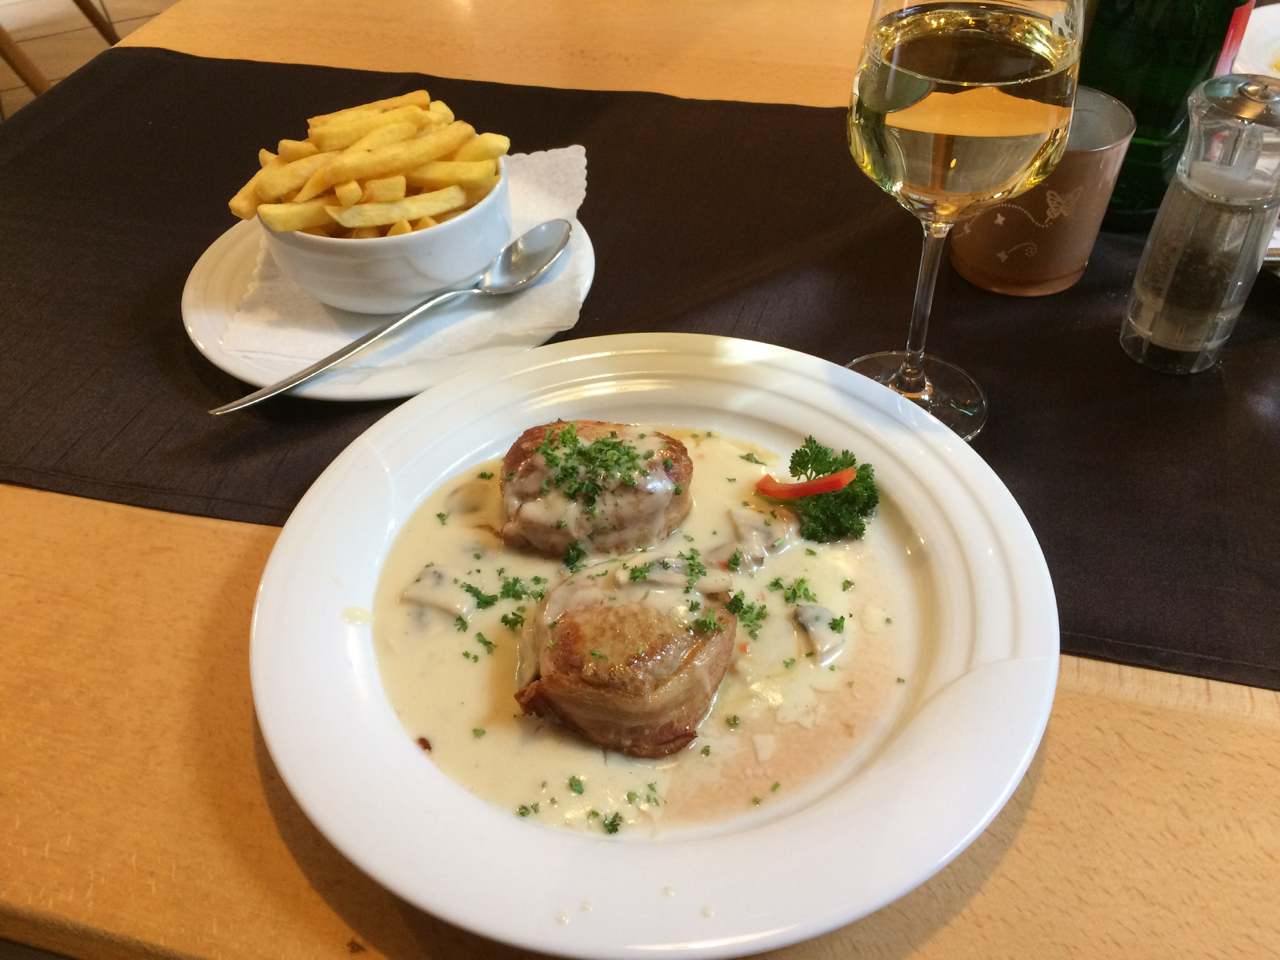 Another fine German pairing. High acid Riesling cuts through all the mouth-coating fat in this dish.